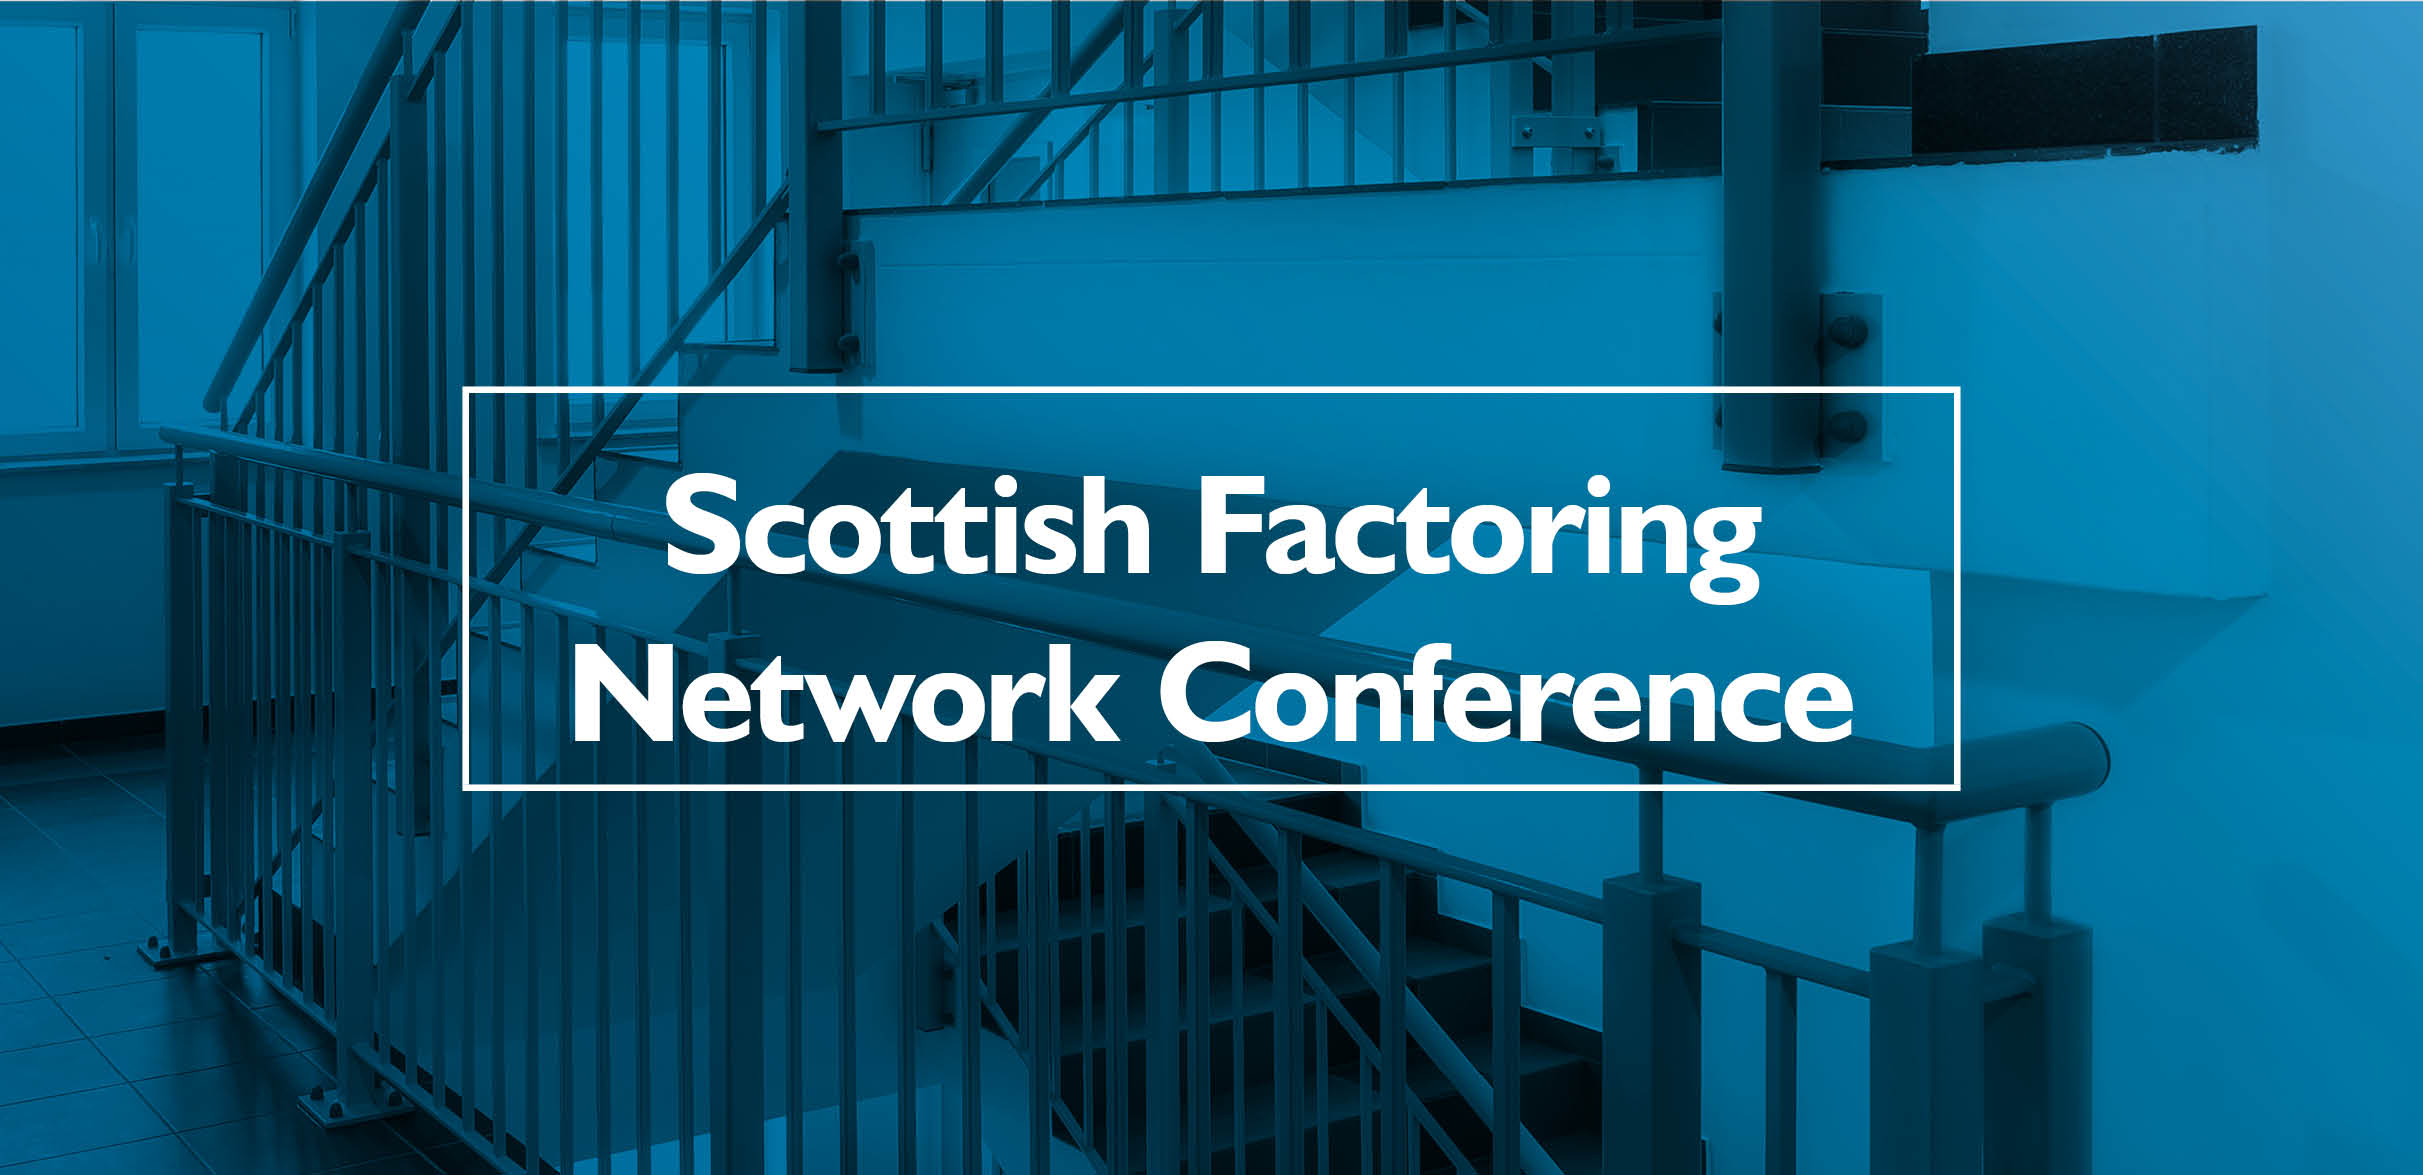 Available to book now - Scottish Factoring Network Conference image